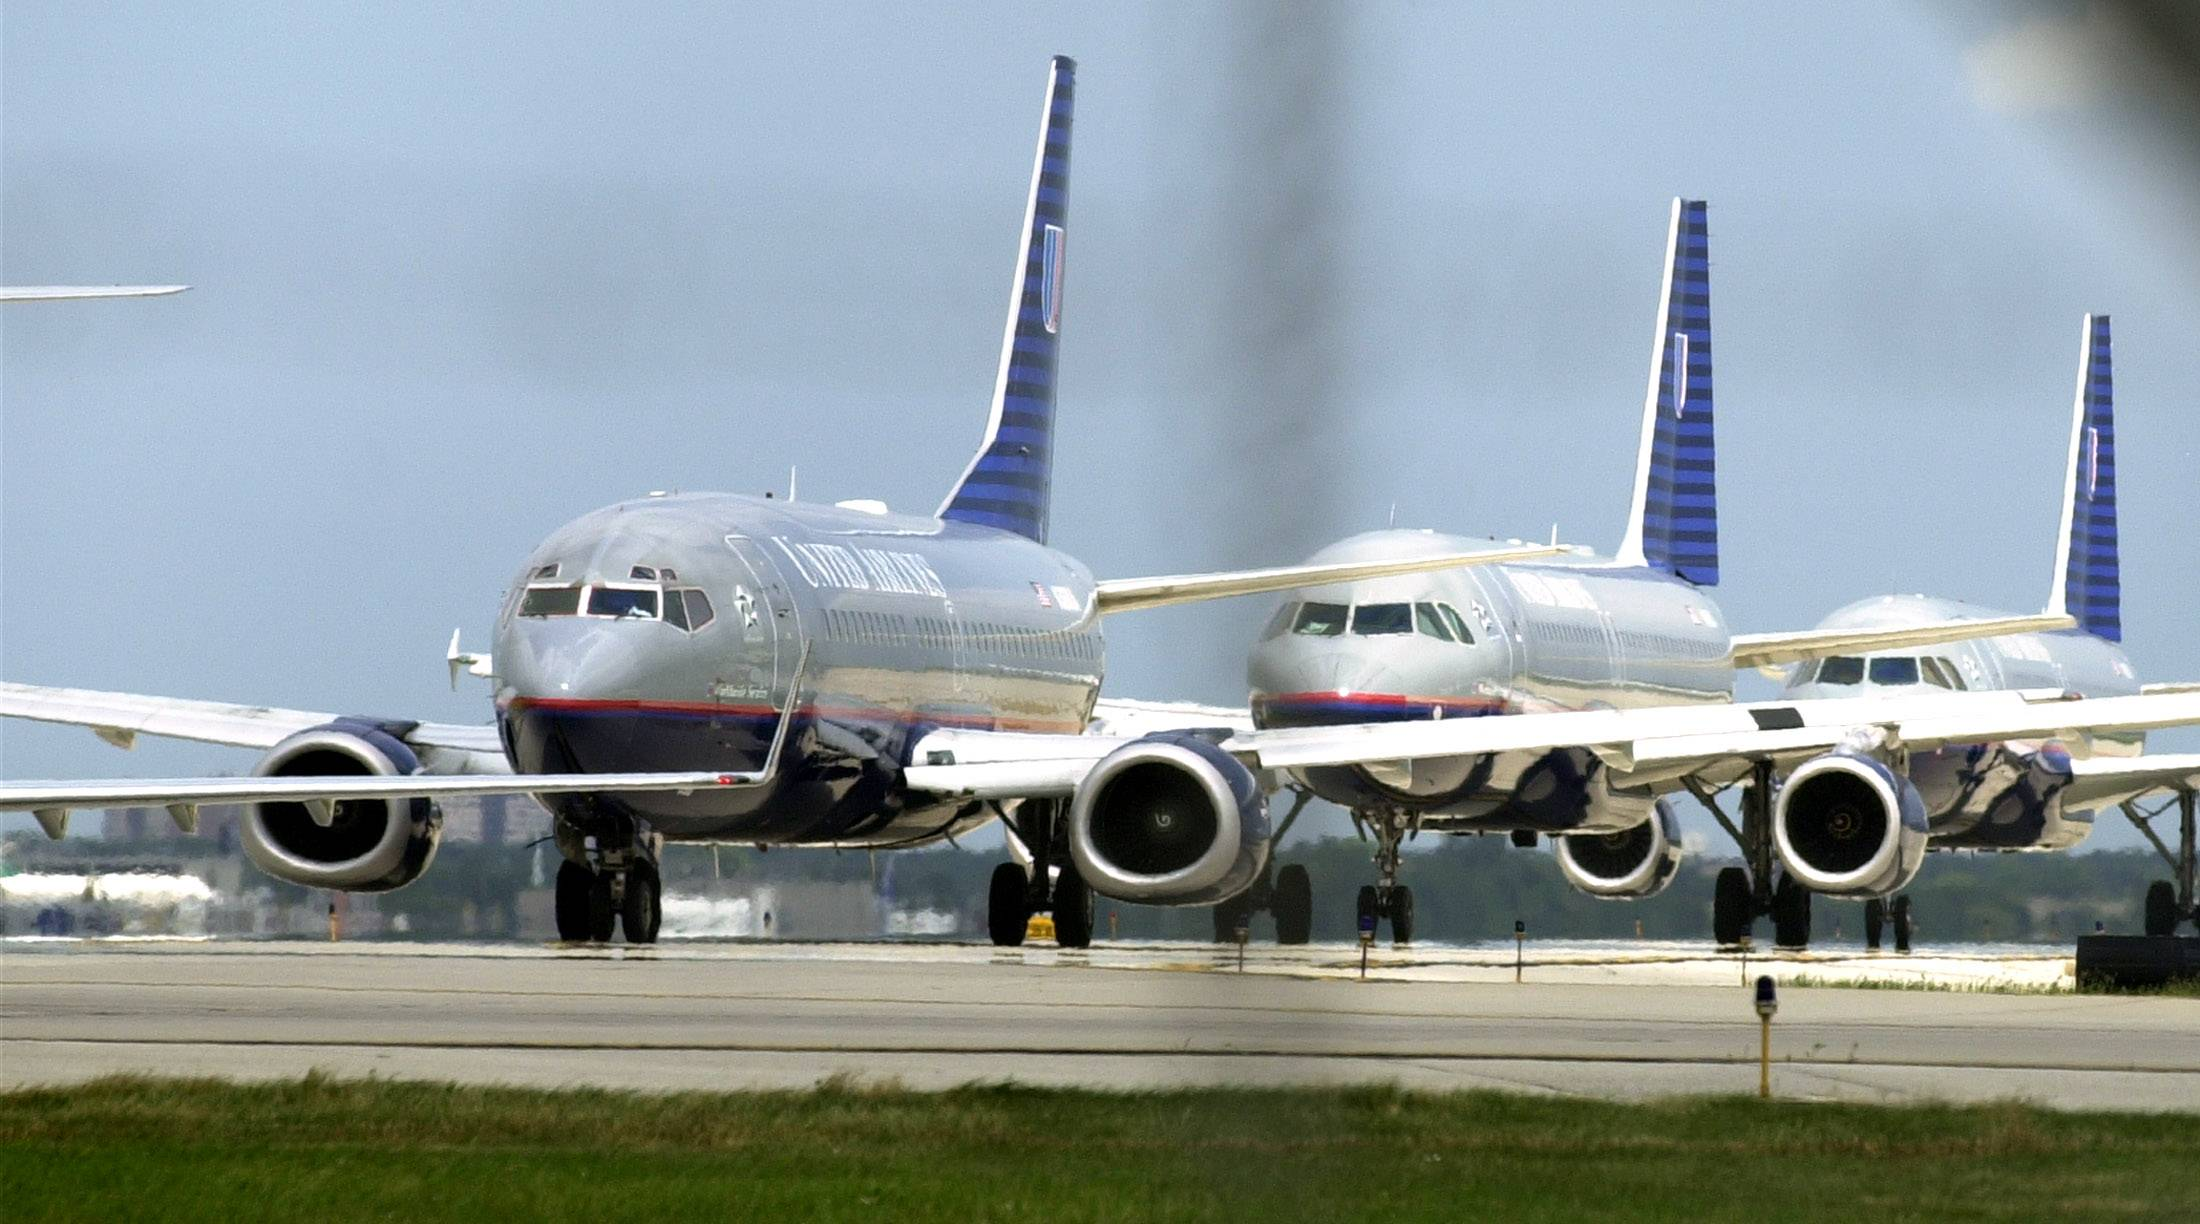 United Airlines canceled 23,000 flights due to weather in January and February. About 90 percent were on its United Express regional service.